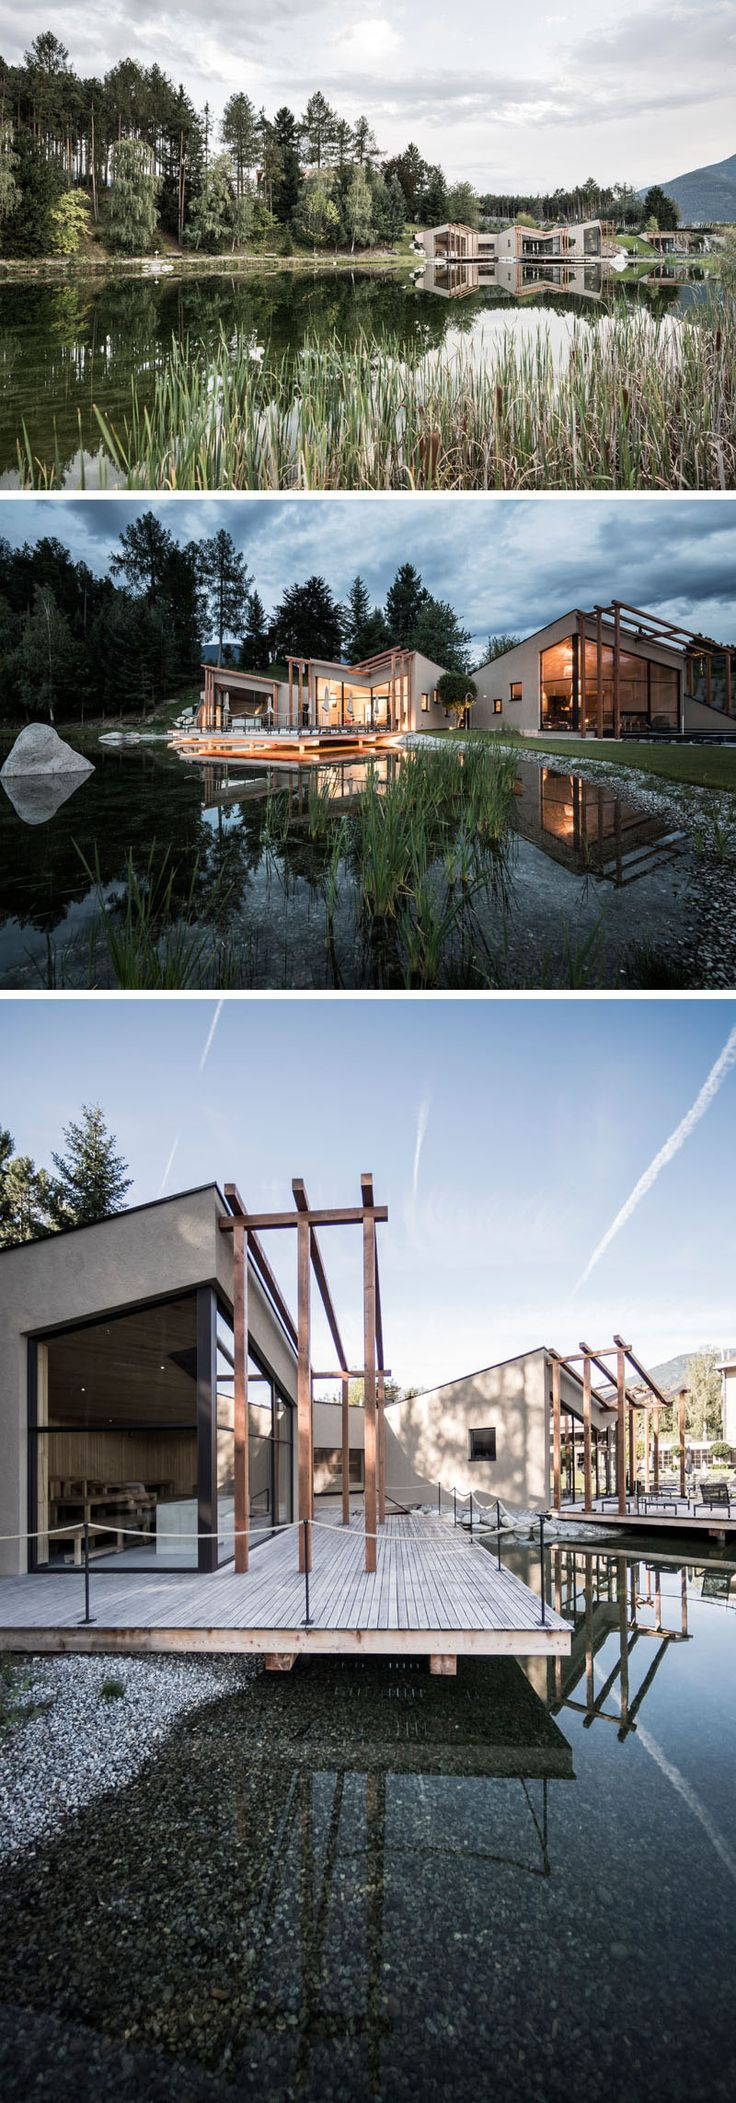 Hotel Seehof, a family-run hotel in Italy that sits next to a small natural lake, has been given a fresh and modern update by noa* – network of architecture. #ModernHotel #Italy #Vacation #ModernArchitecture